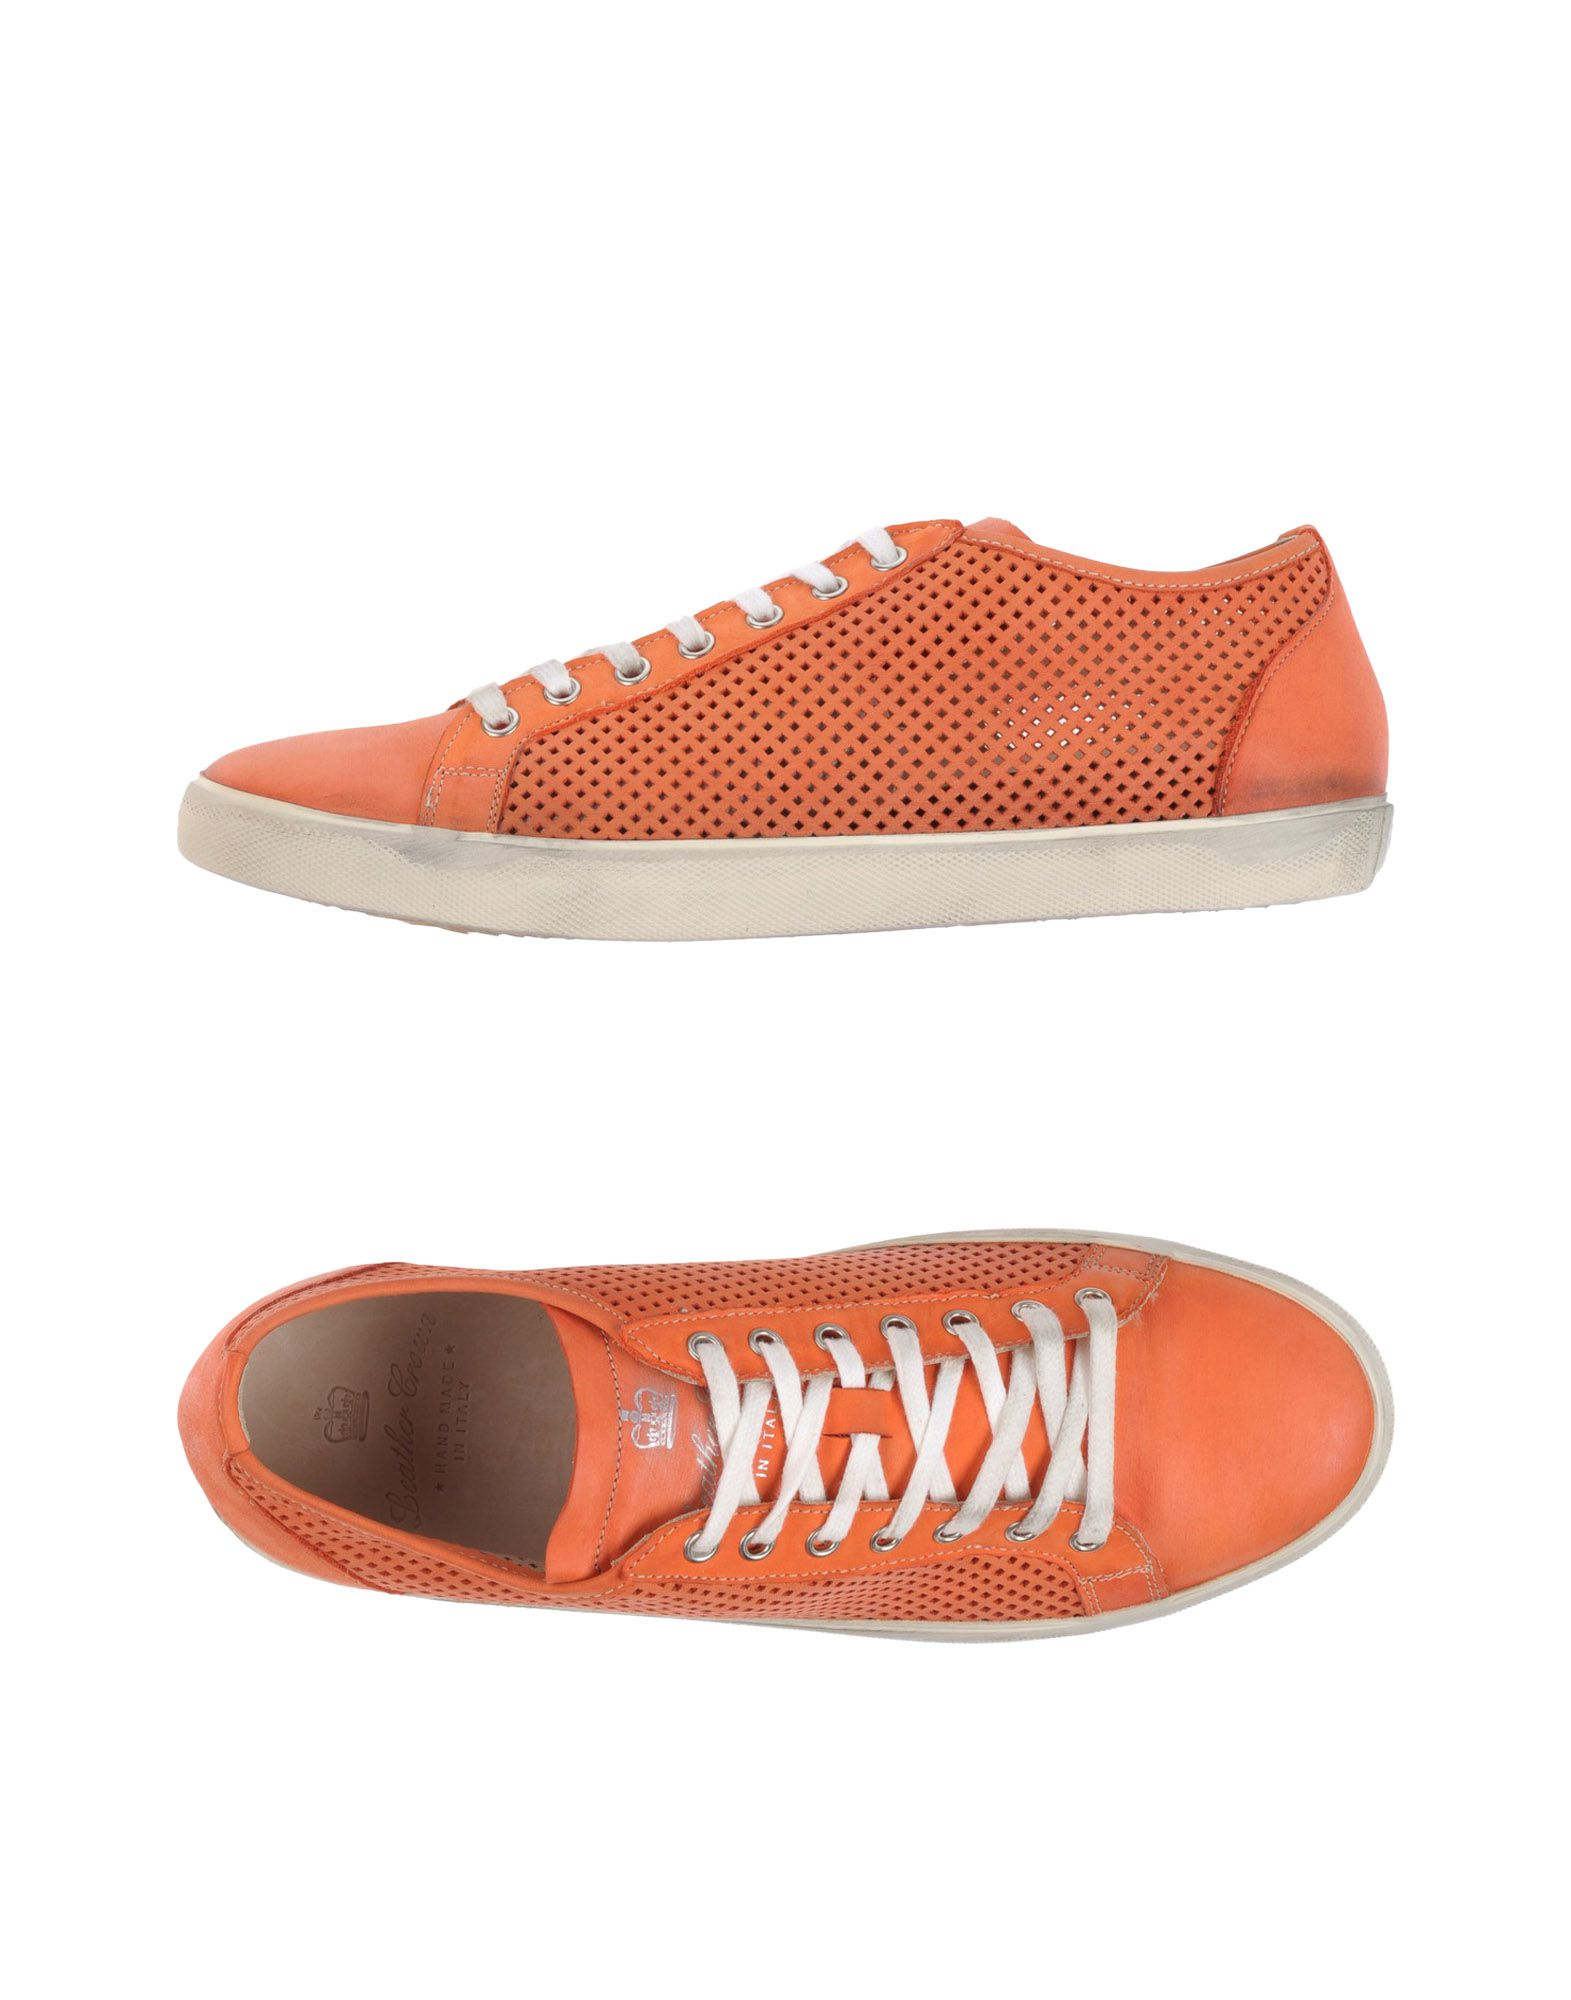 Leather Crown Sneakers - Men Leather Leather Leather Crown Sneakers online on  Australia - 11162541XO 9430ee